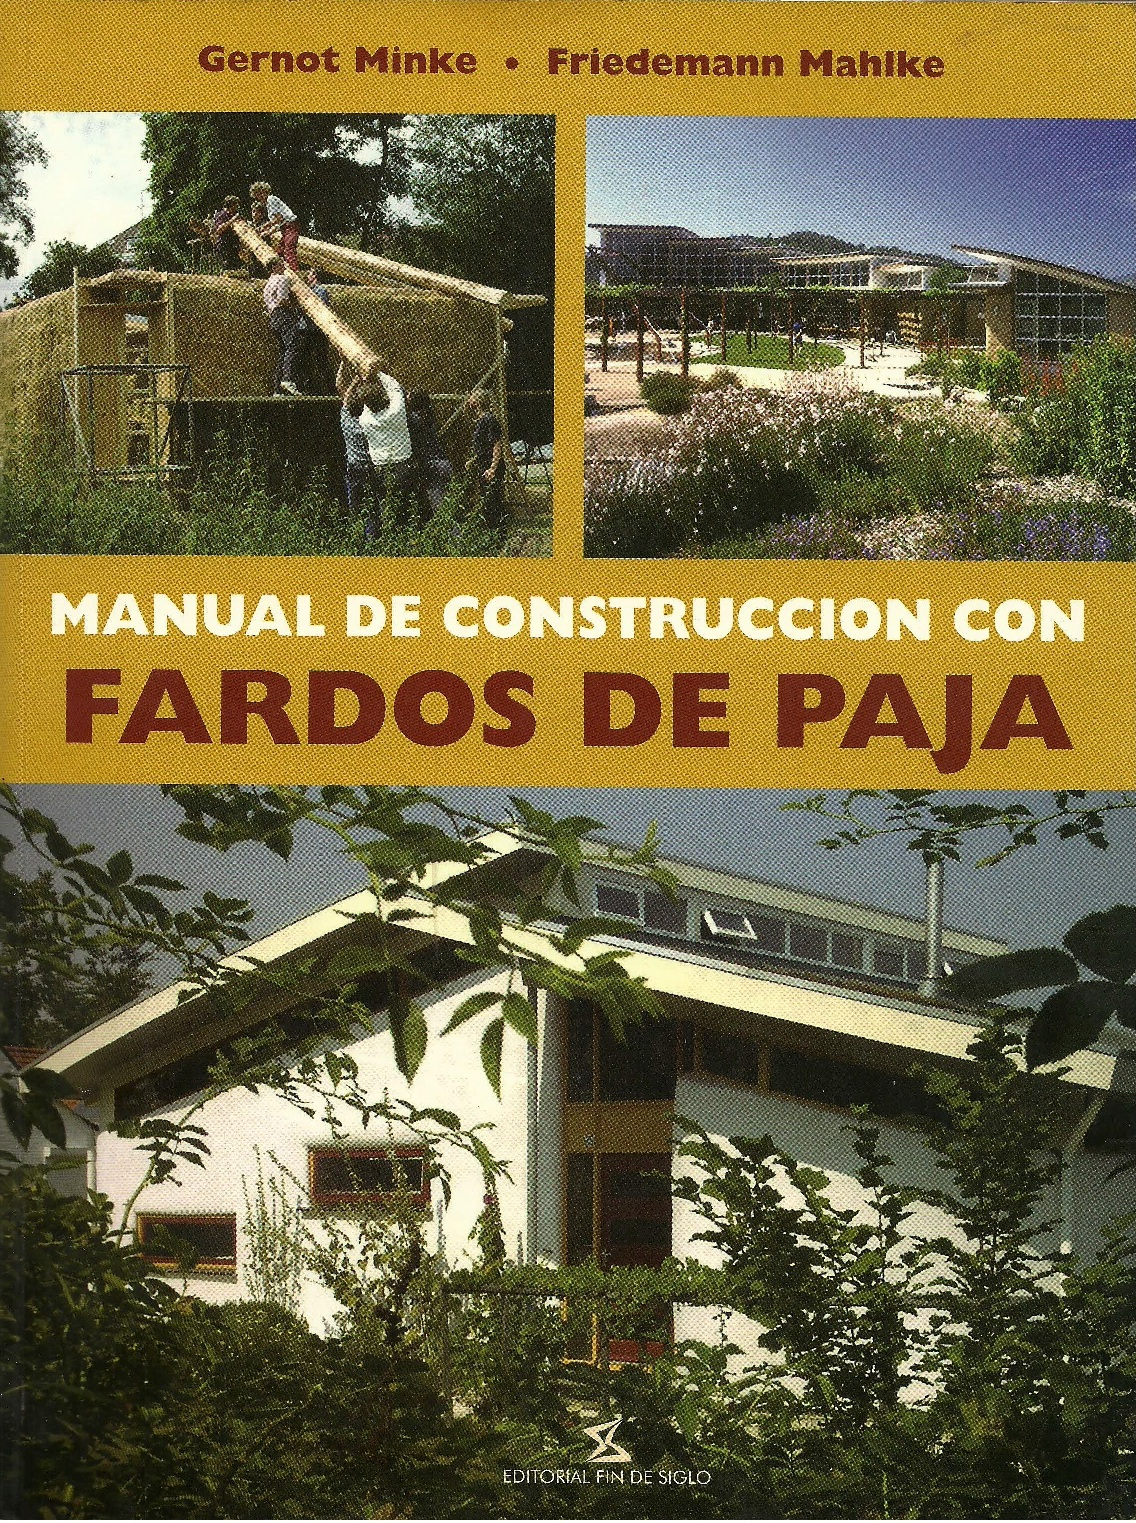 Descargar gratis manual de construcci n con paja g minke for Manual de construccion de piscinas pdf